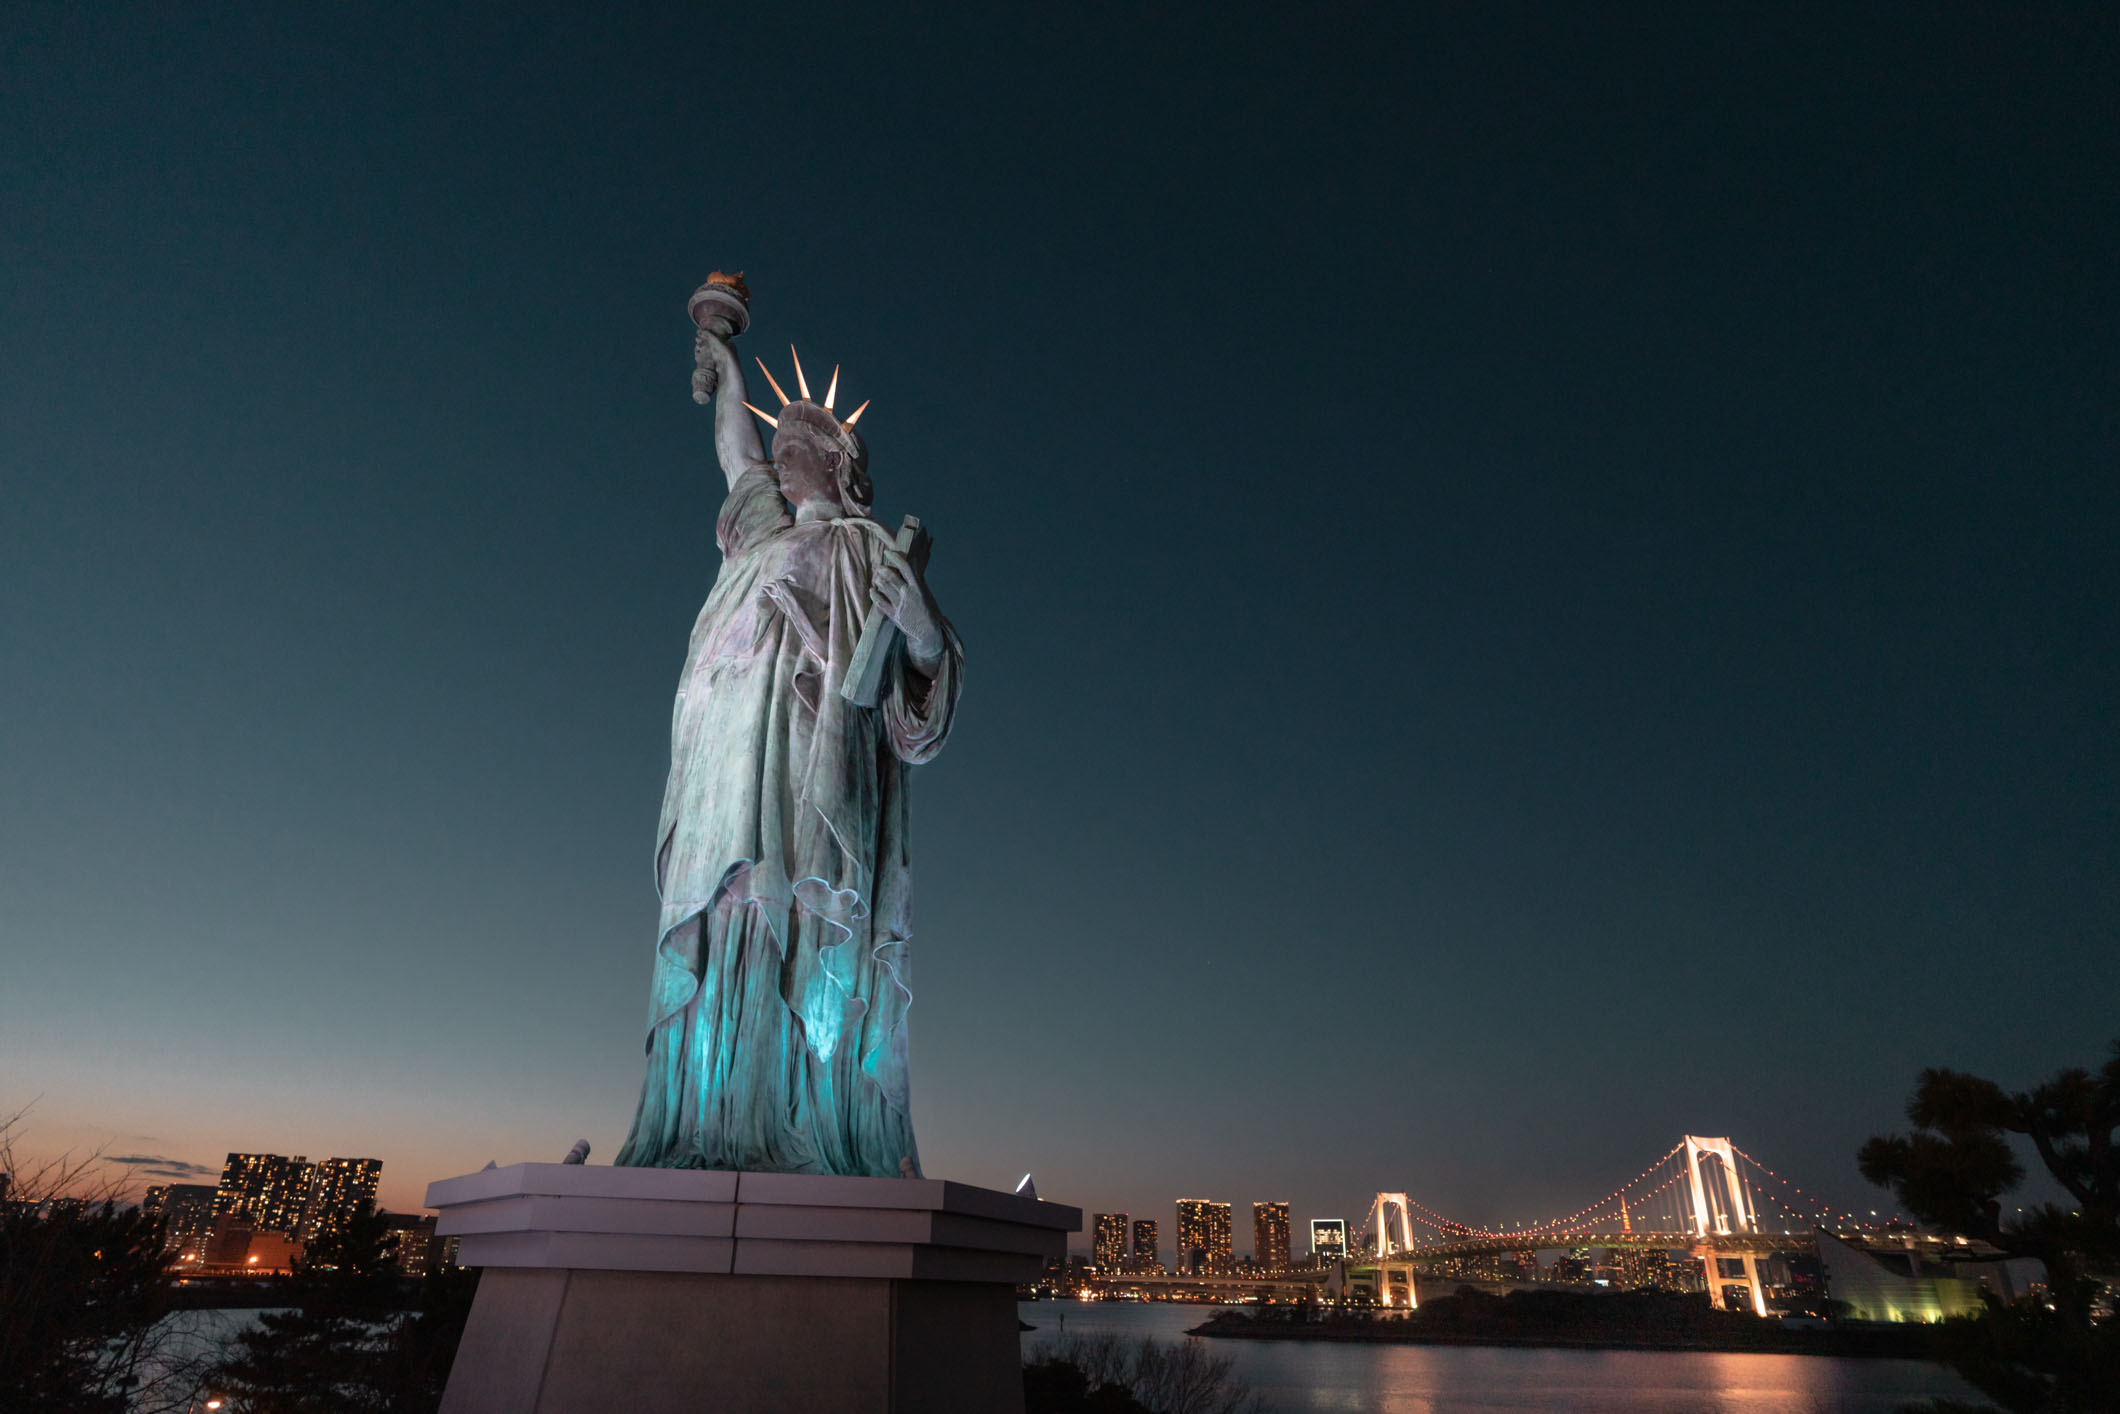 Things To Do In Odaiba Tokyo -Don't Miss The Statue of Liberty And The Rainbow Bridge